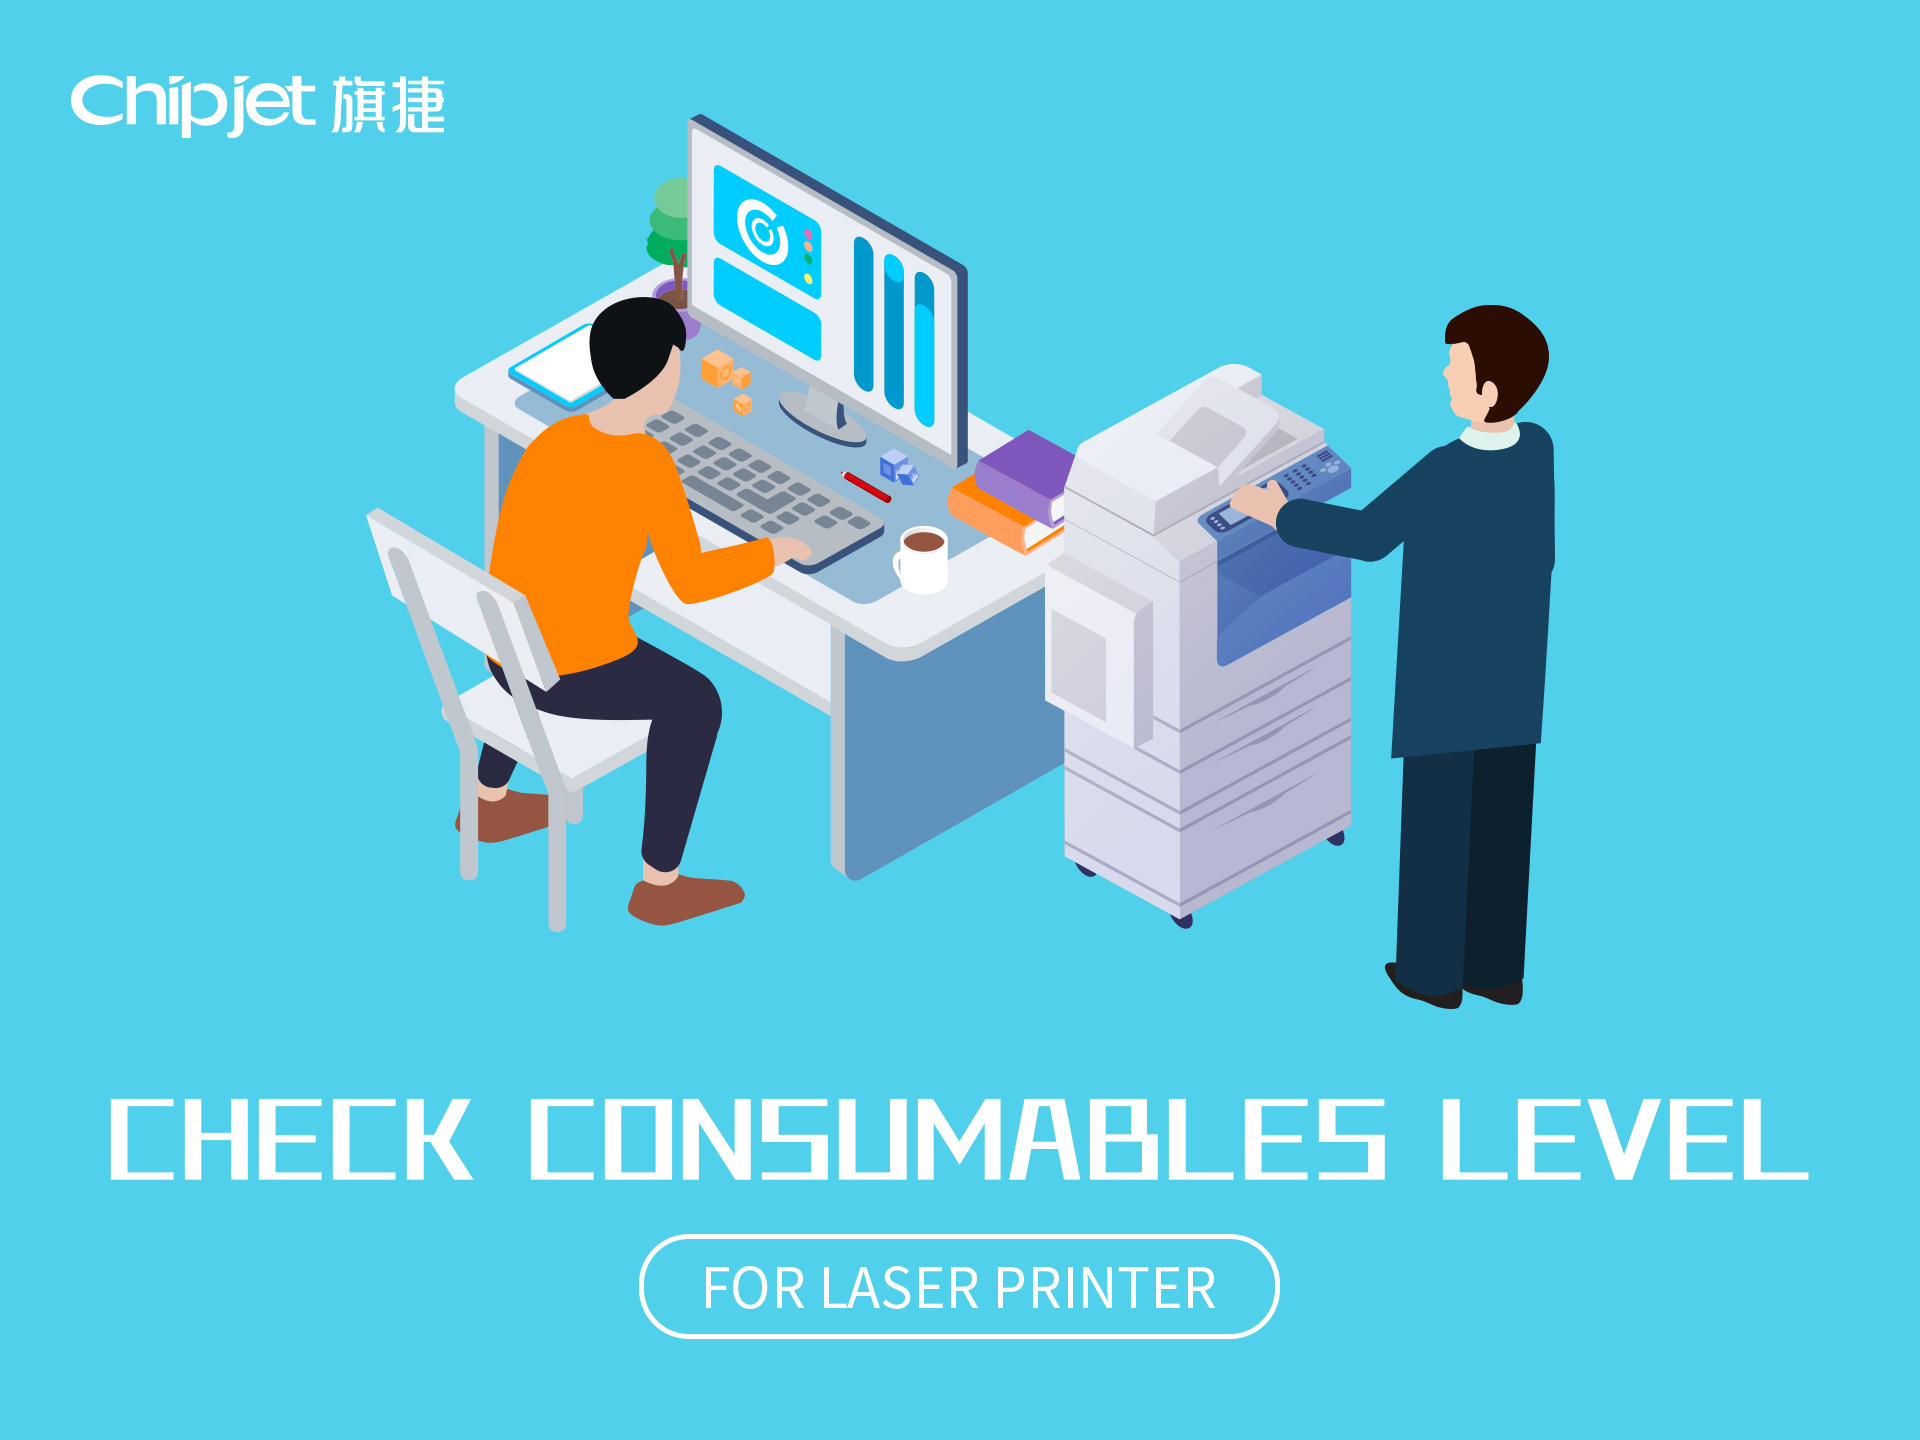 How to Check the Consumables Level of Laser Printer